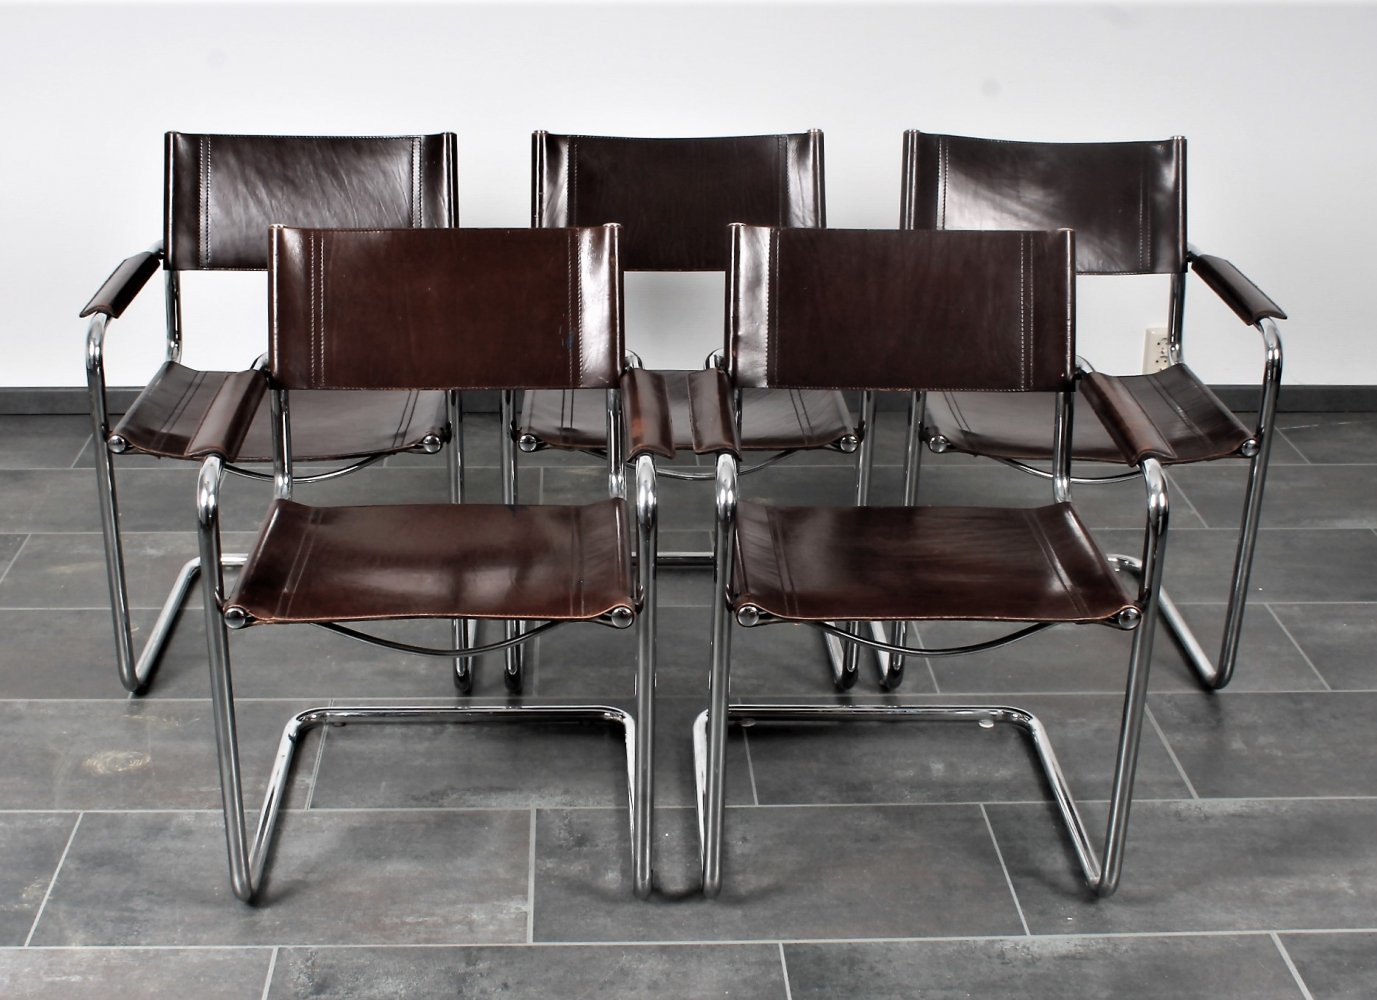 Set of 5 thick brown saddle leather MG5 chairs by Marcel Breuer / Mart Stam for Matteo Grassi, 1980s